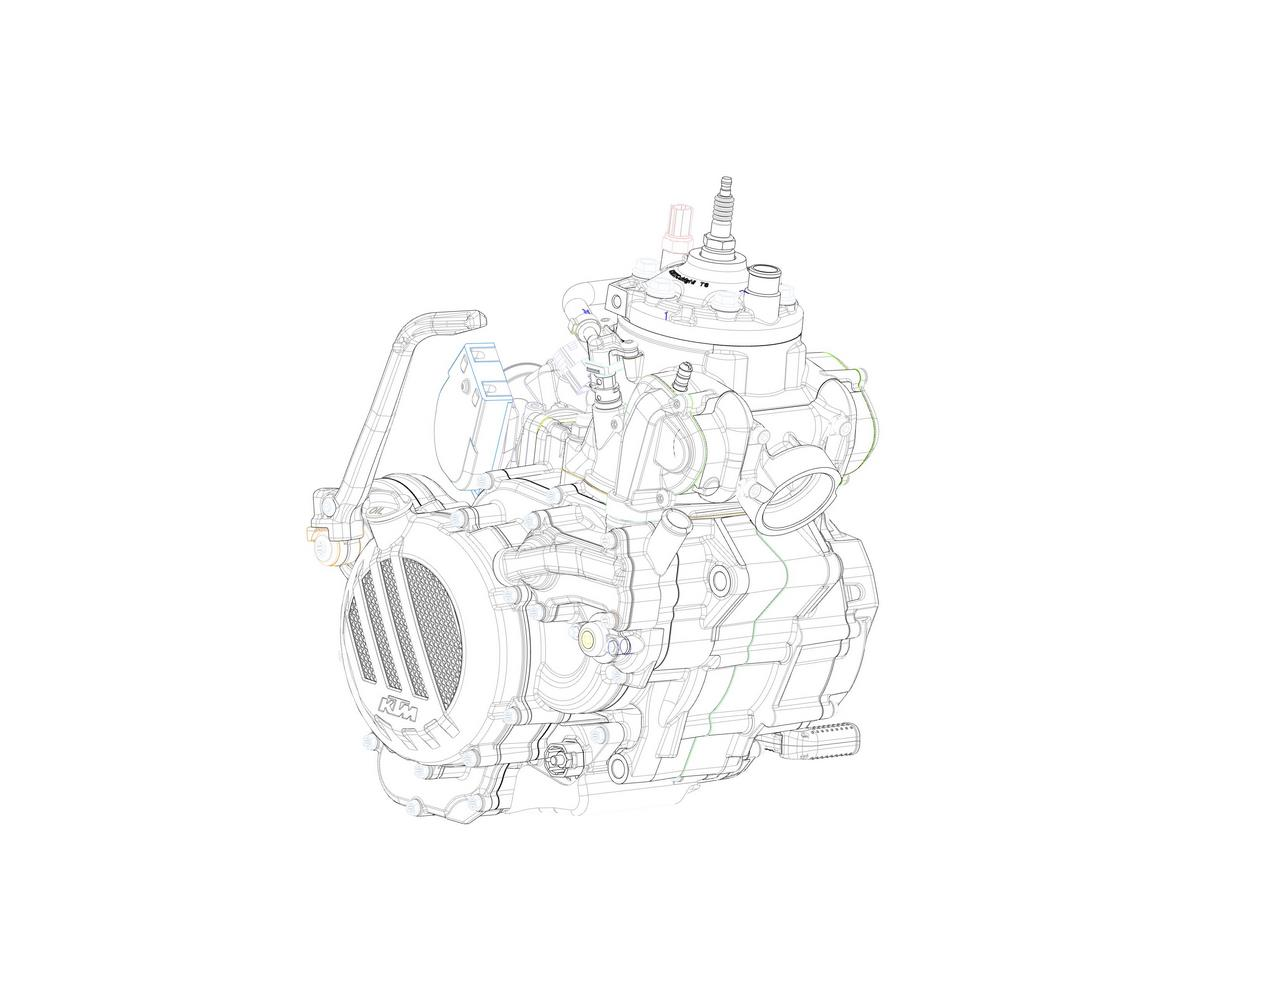 Ktm Develops First Two Stroke Fuel Injected Engine